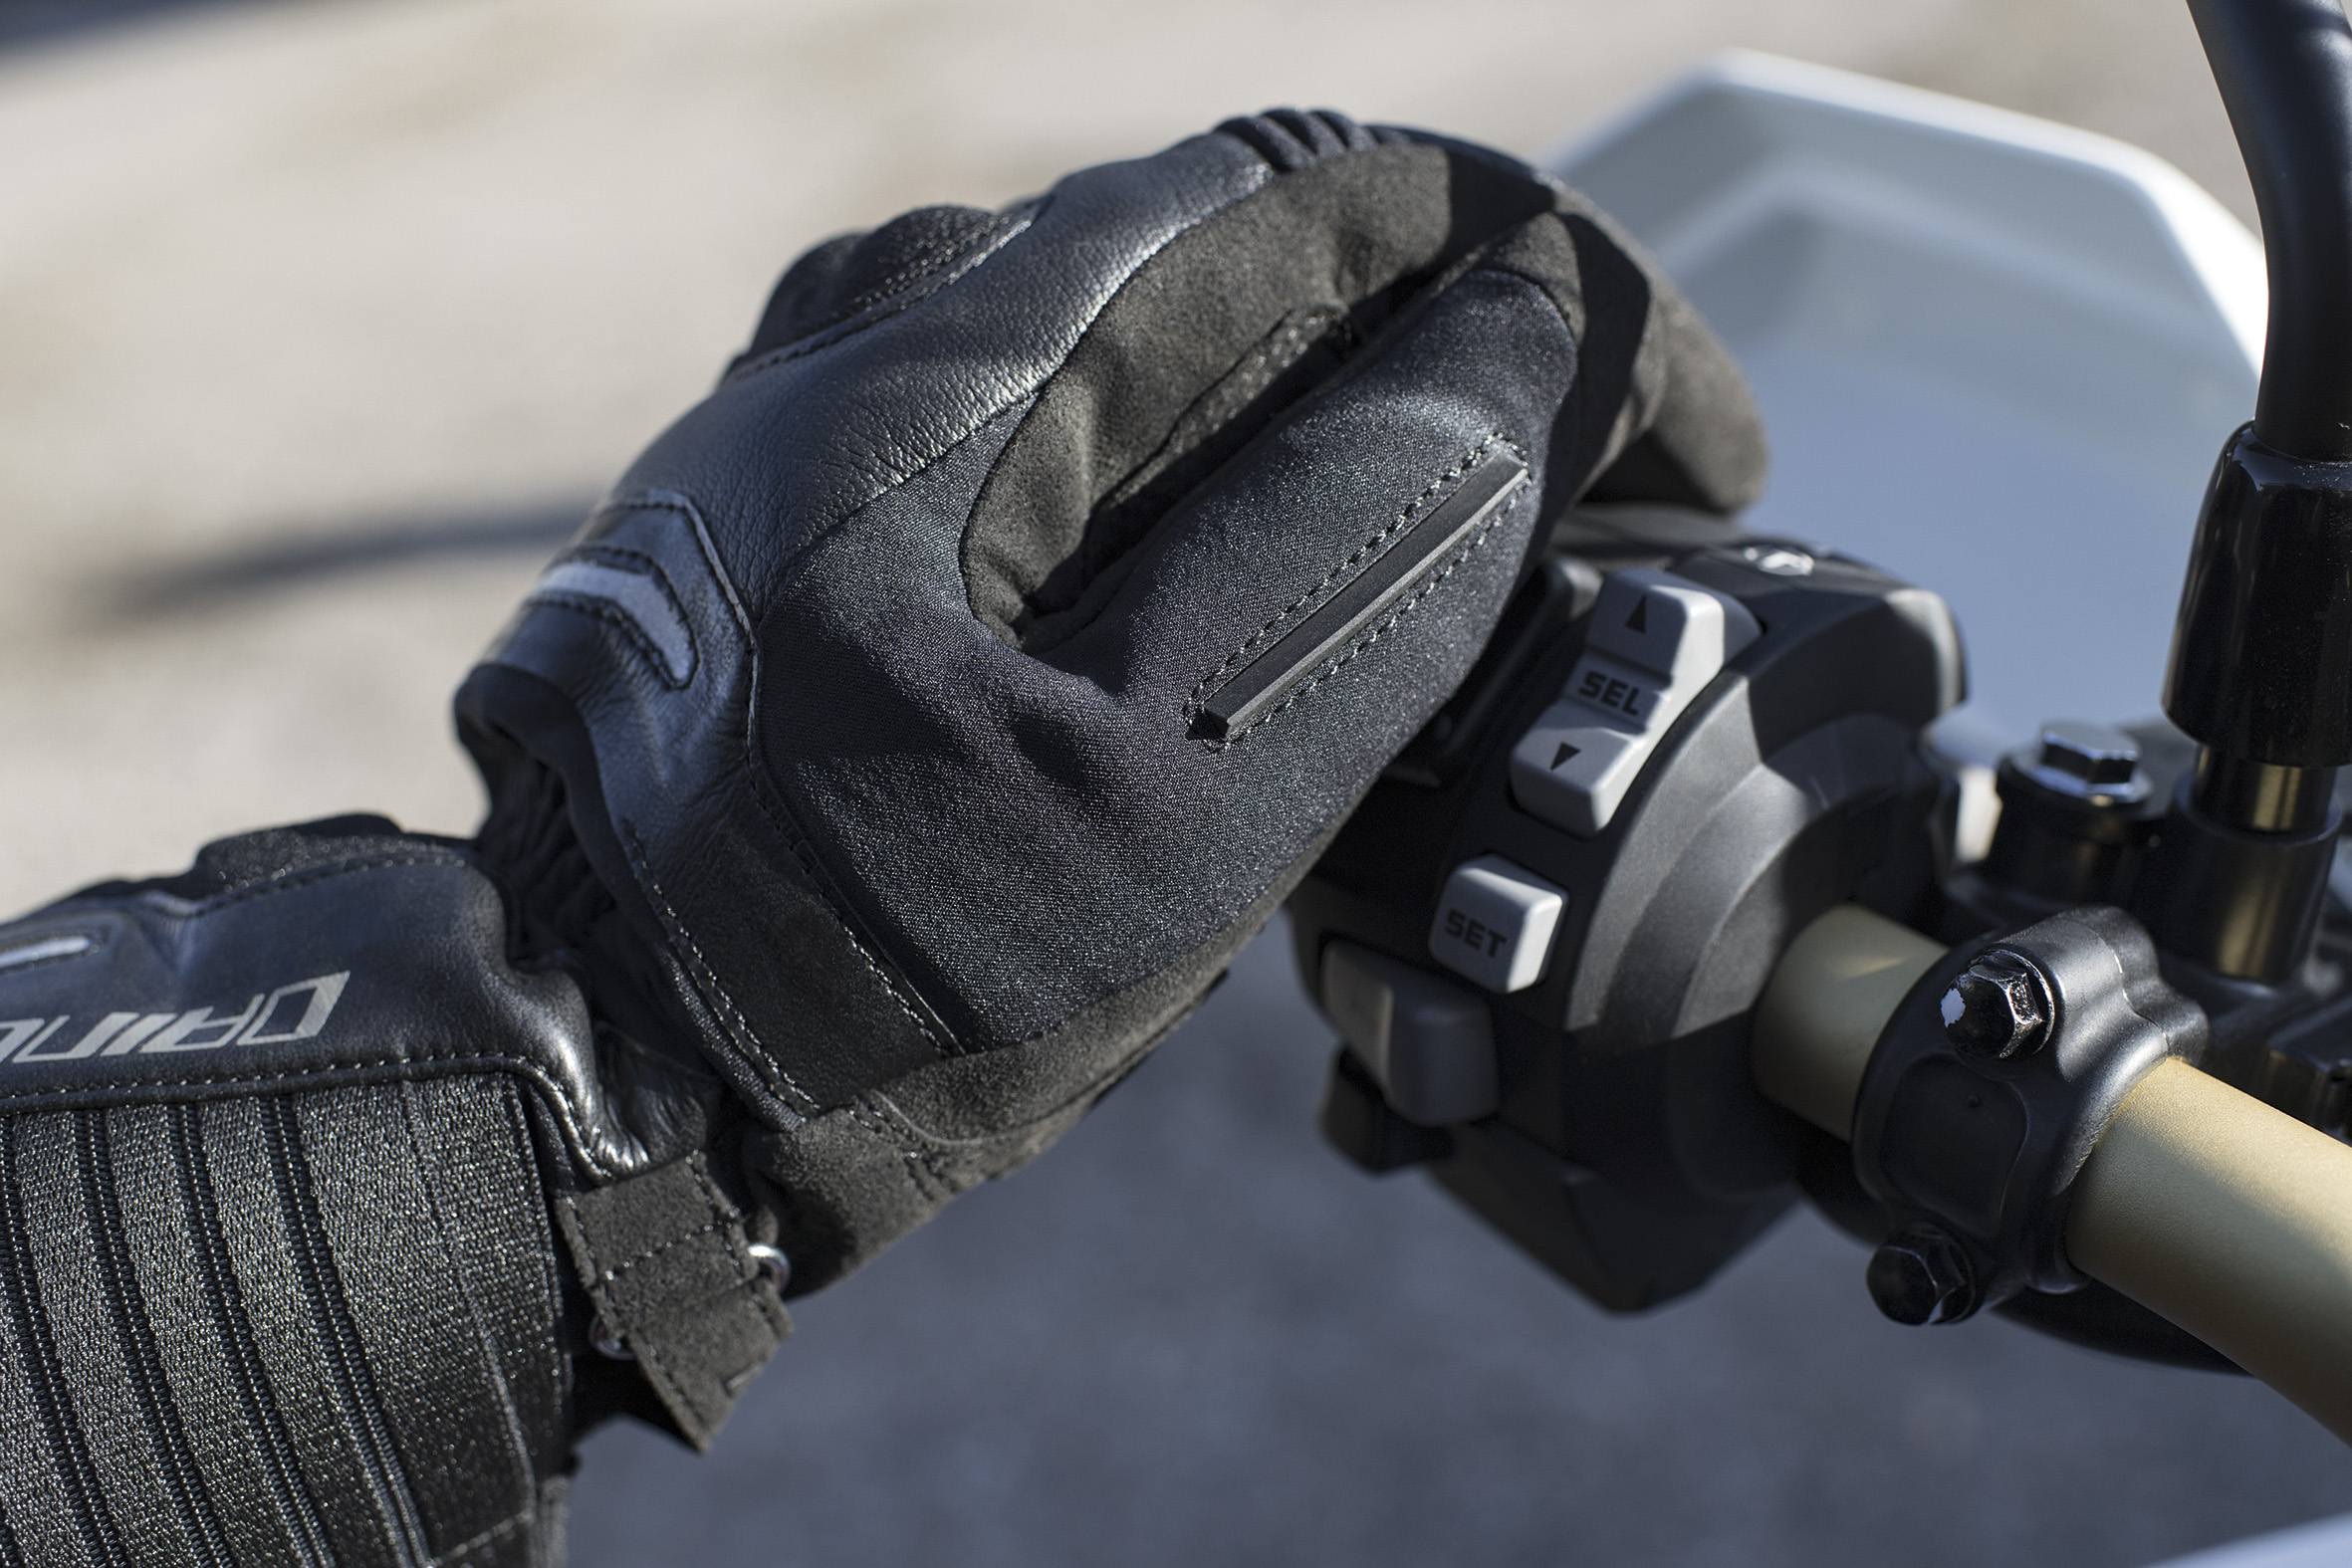 Touring__SOLARYS_GLOVES___SOLARYS_AIR_BOOTS___6